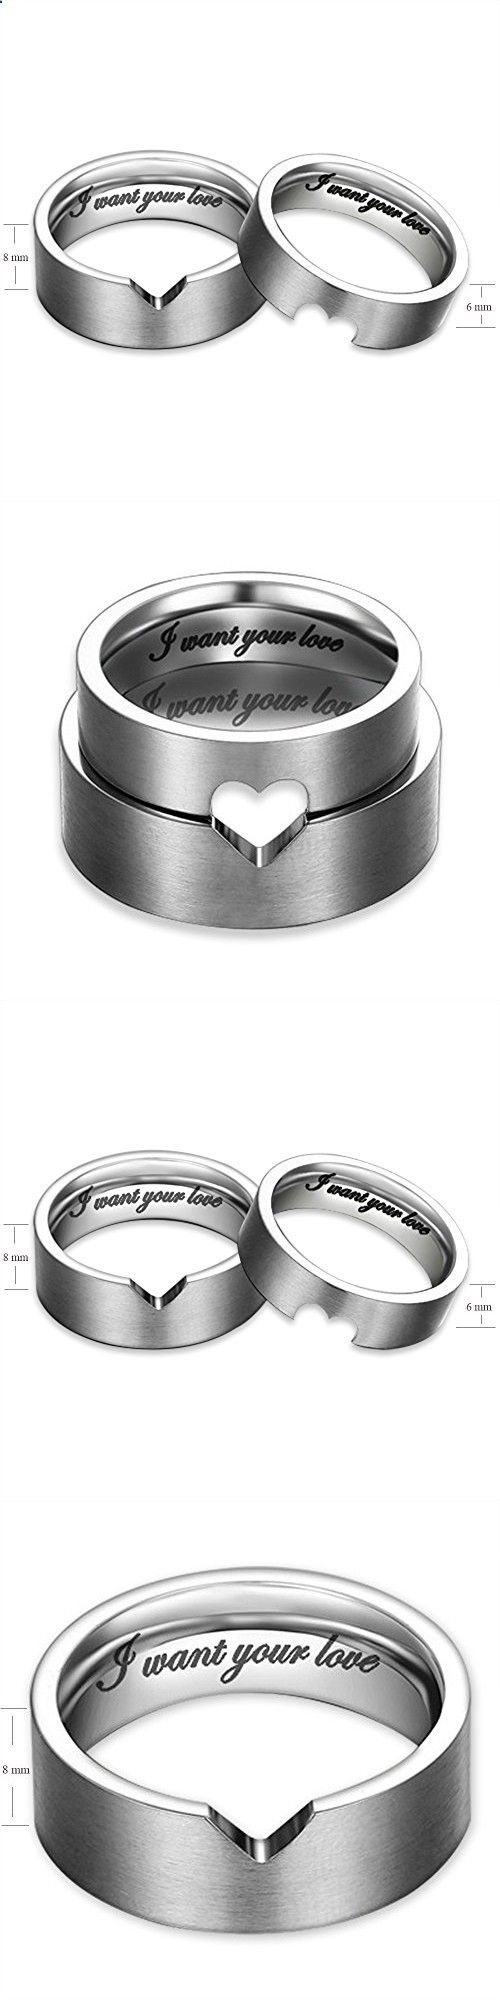 I Want Your Love Hollow Matching Heart Flat Couple Rings Mens Womens Stainless Steel White Wedding Bands, Christmas Gift for Boyfriend/girlfriend, Valentine Engagement Promise Matching Wide Rings, Tail Ring Thumb Ring (6mm, 8mm) (Size:10.0 (8mm Width))